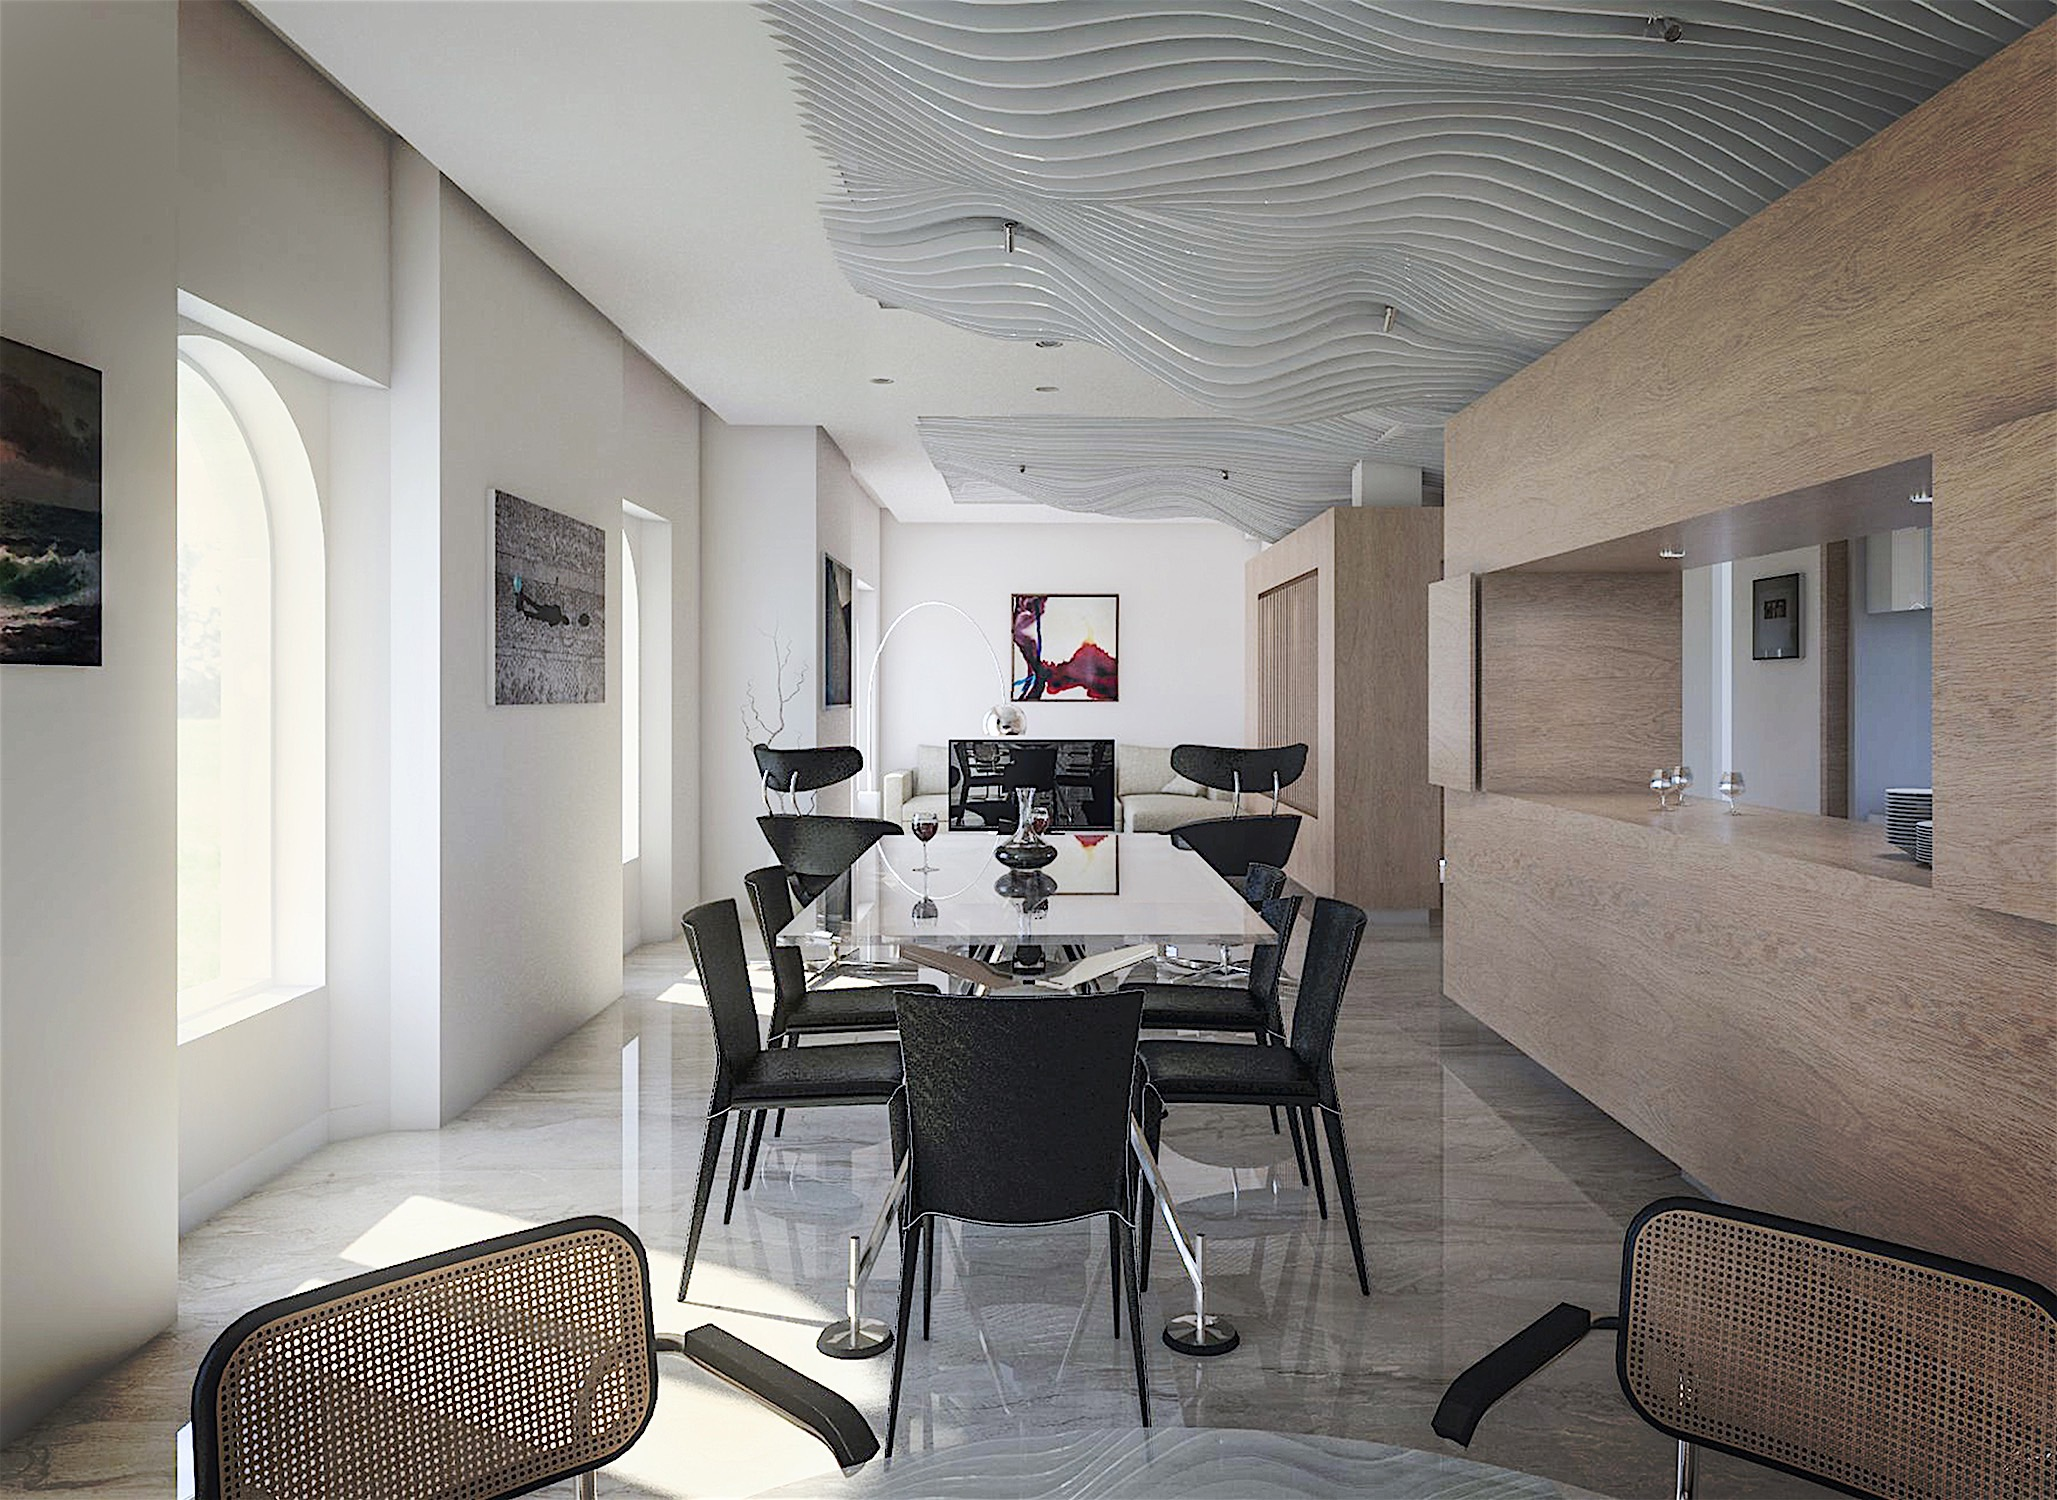 heredia renovation: Parametric ceiling